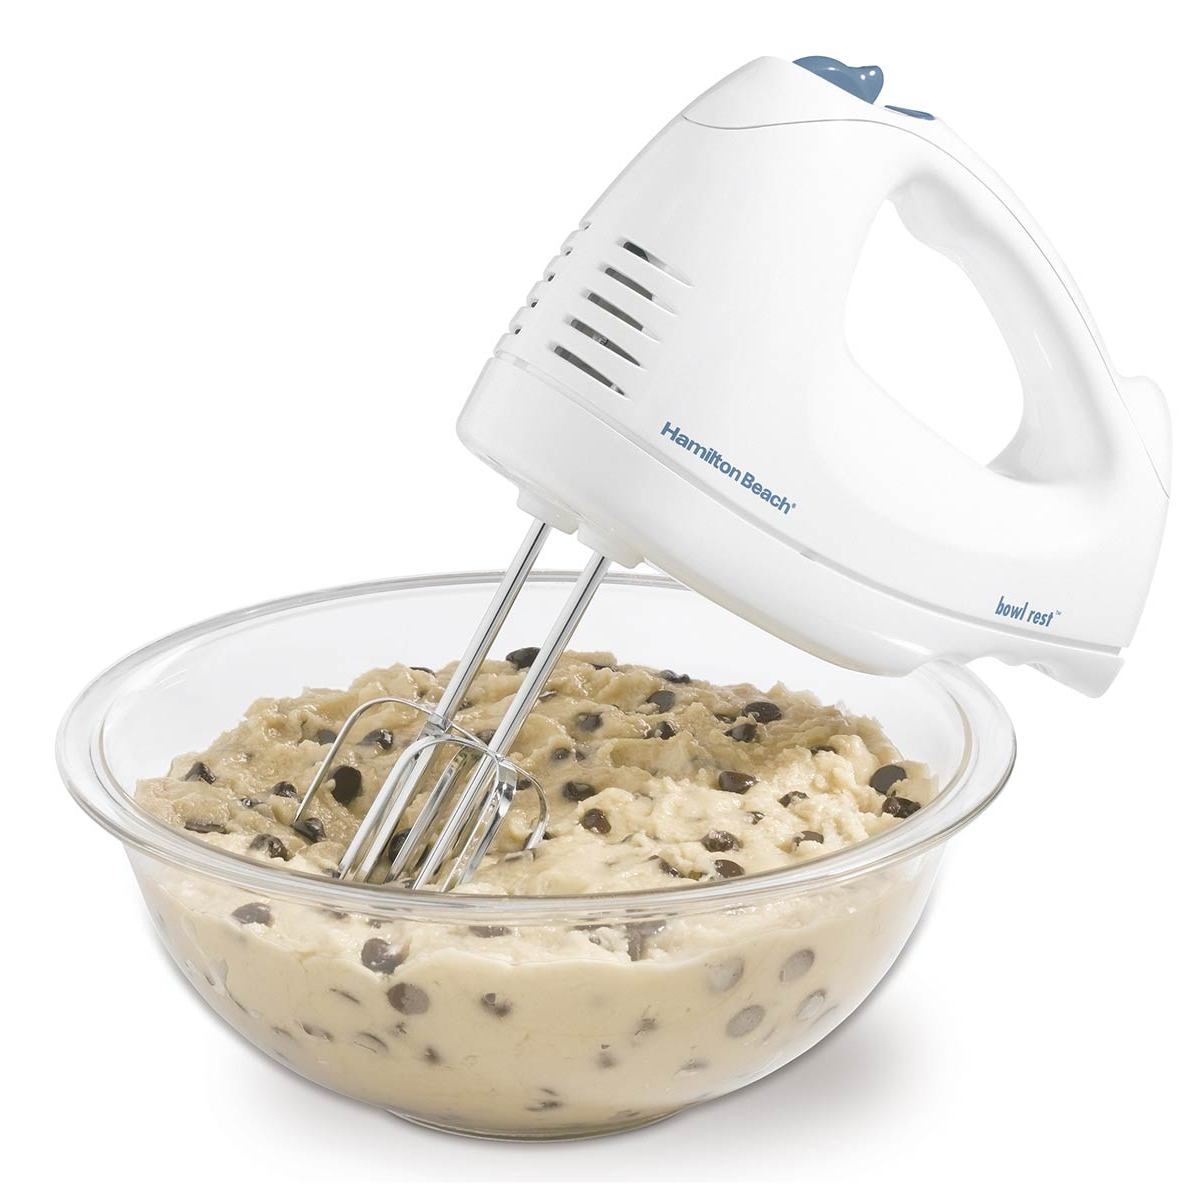 6 Speed Hand Mixer (62680R)